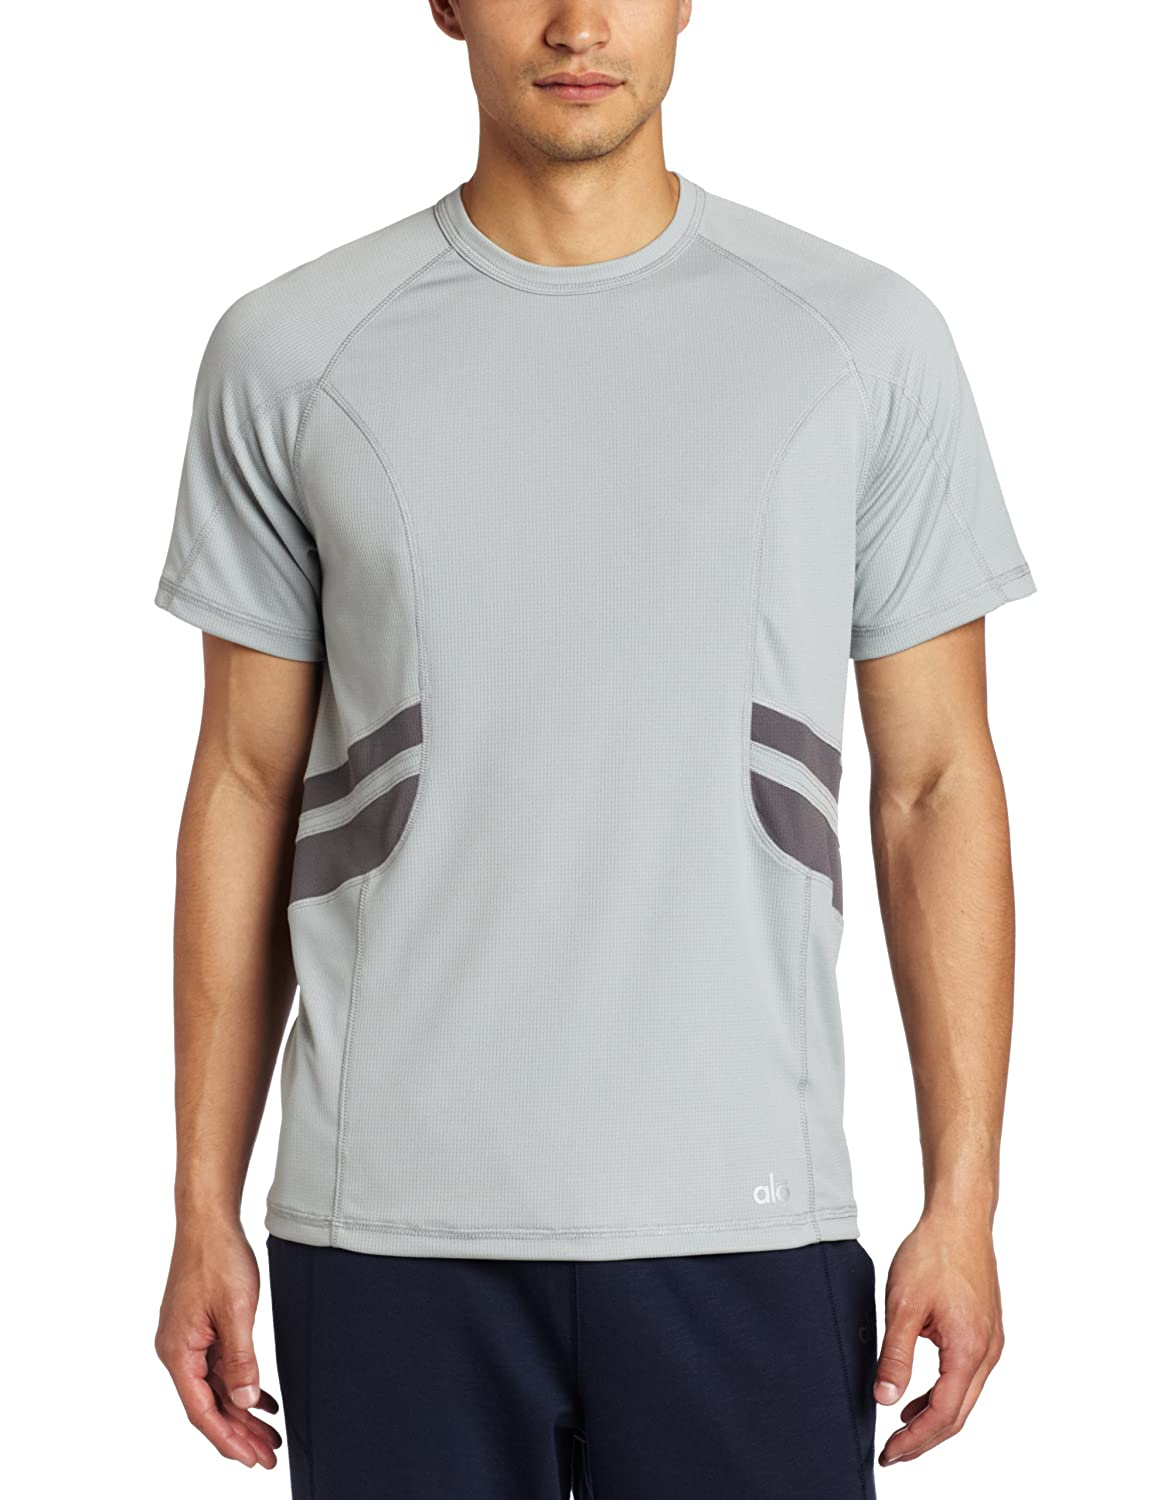 Alo Yoga Mens Capture Short-Sleeve T-Shirt